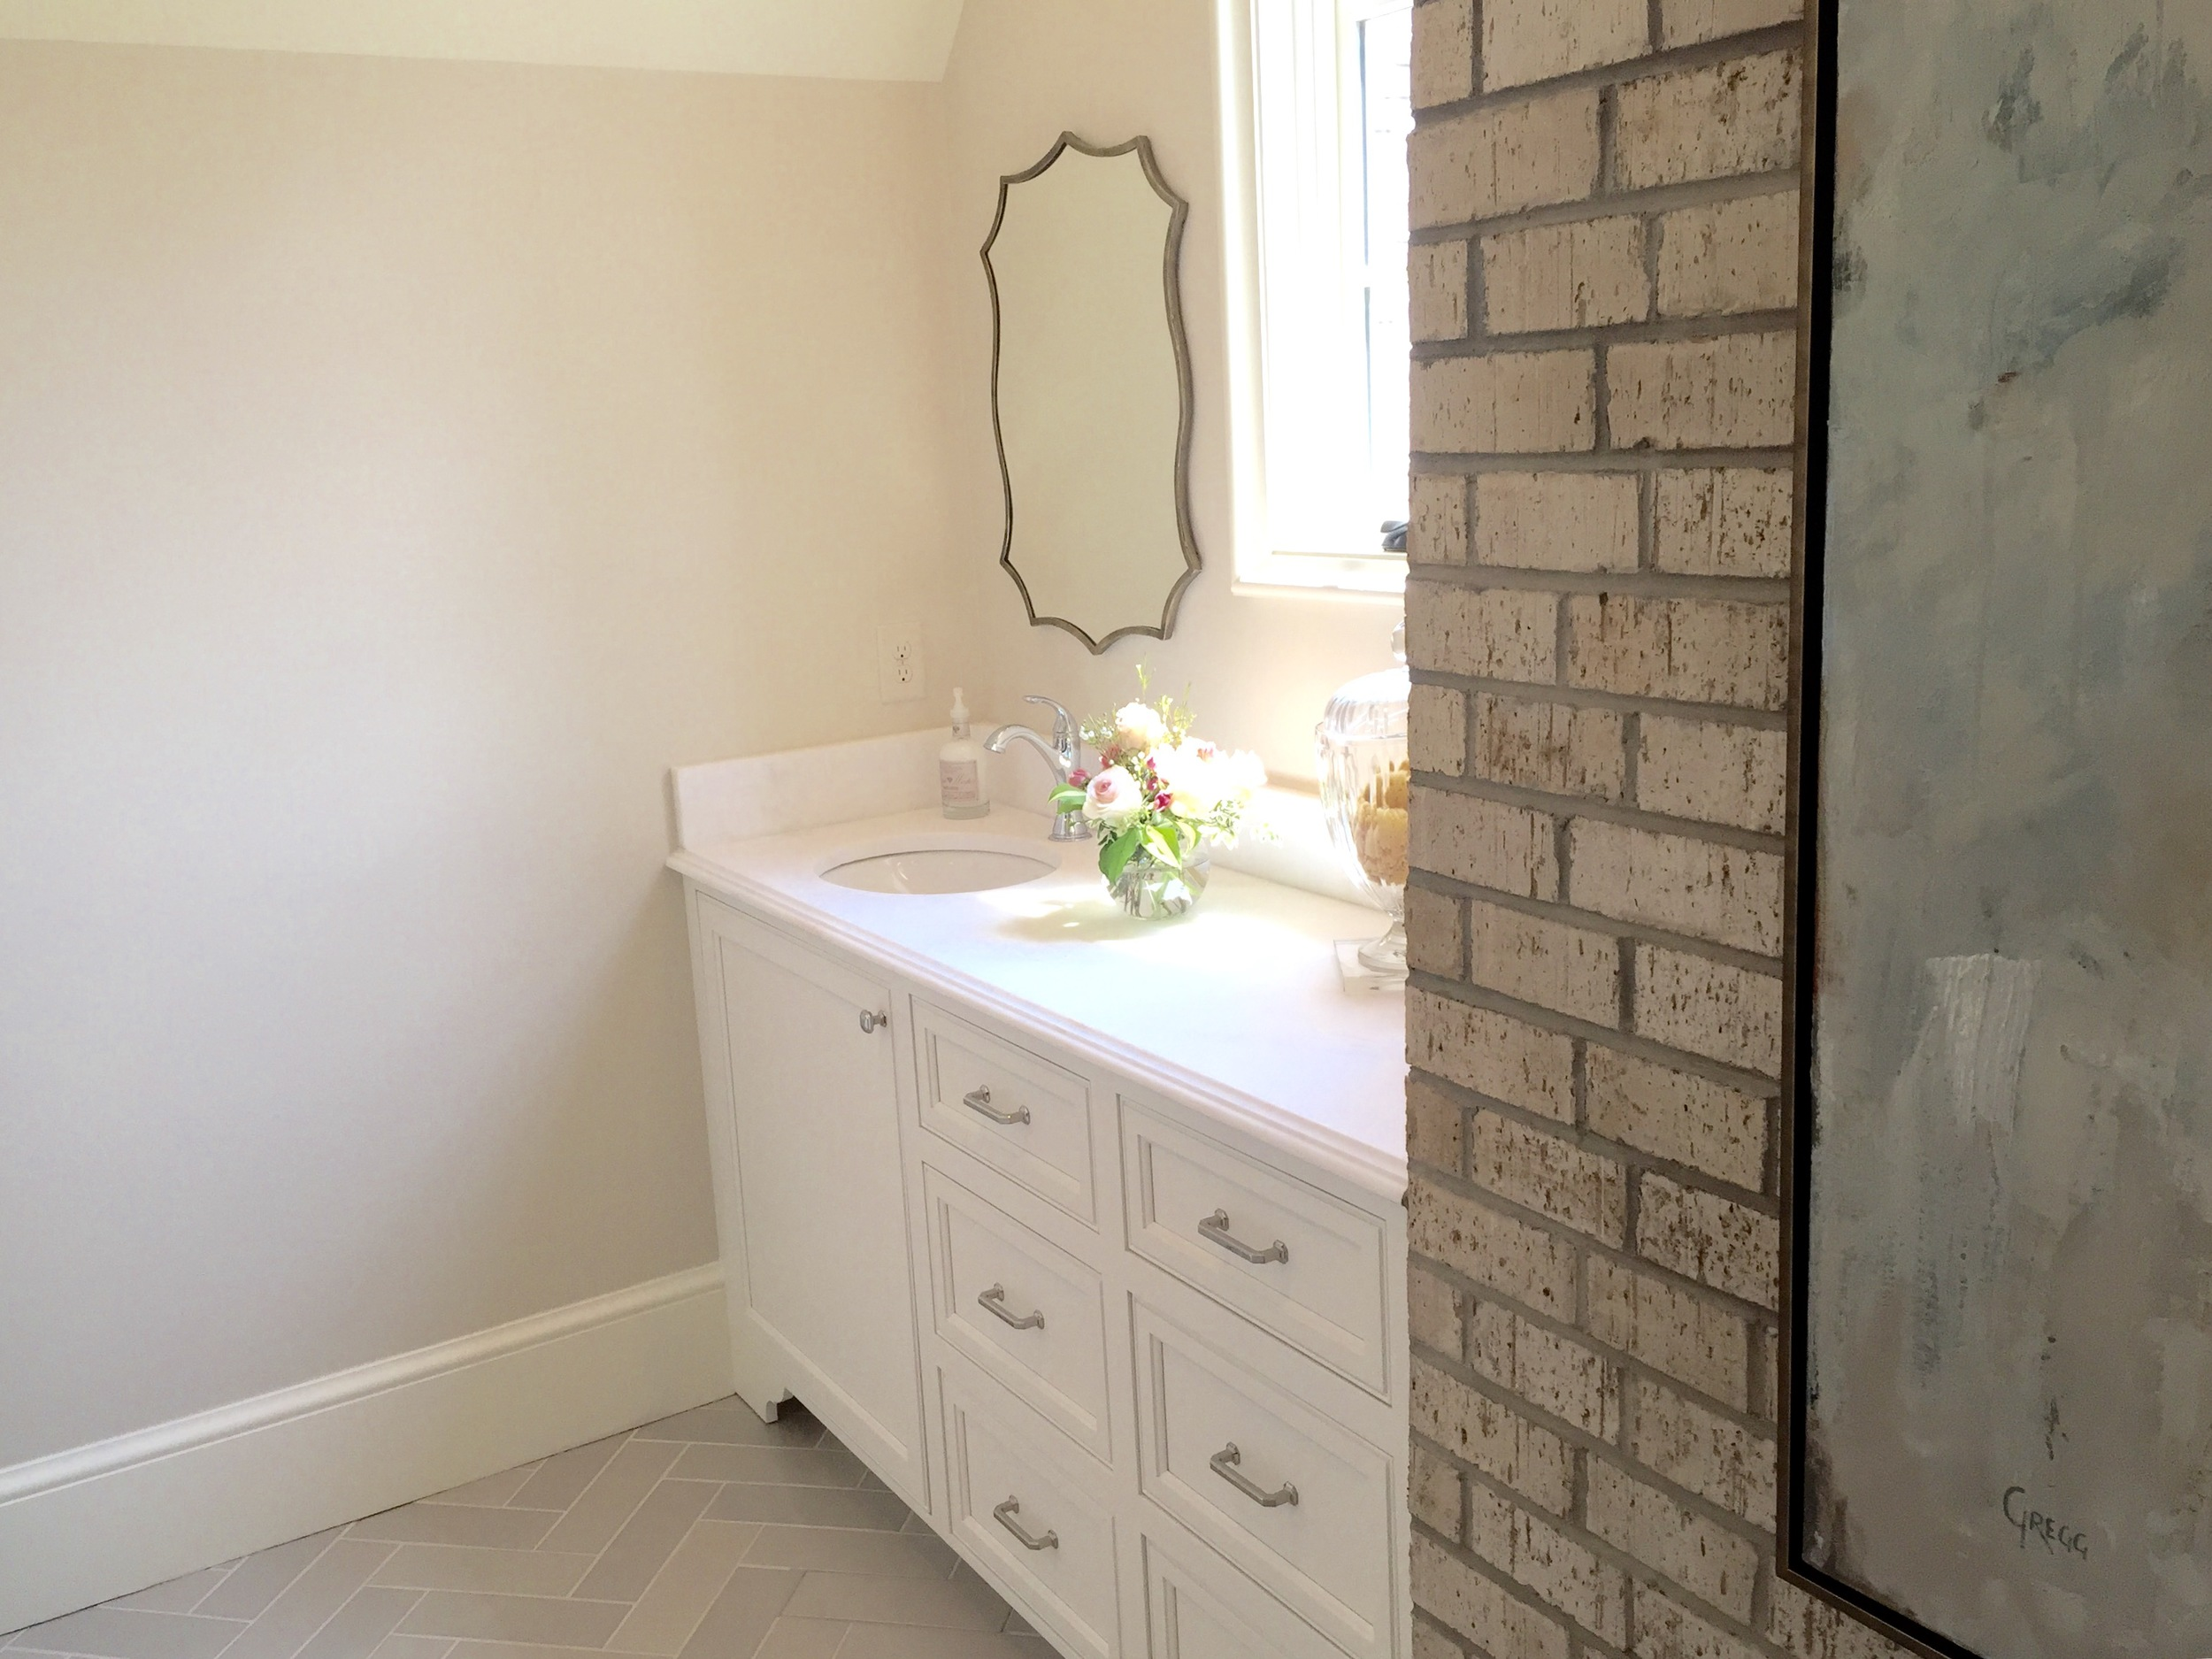 Each house had a touch of exposed brick. This bathroom paired herringbone tile floors with a stained brick for an elegant and inviting retreat.